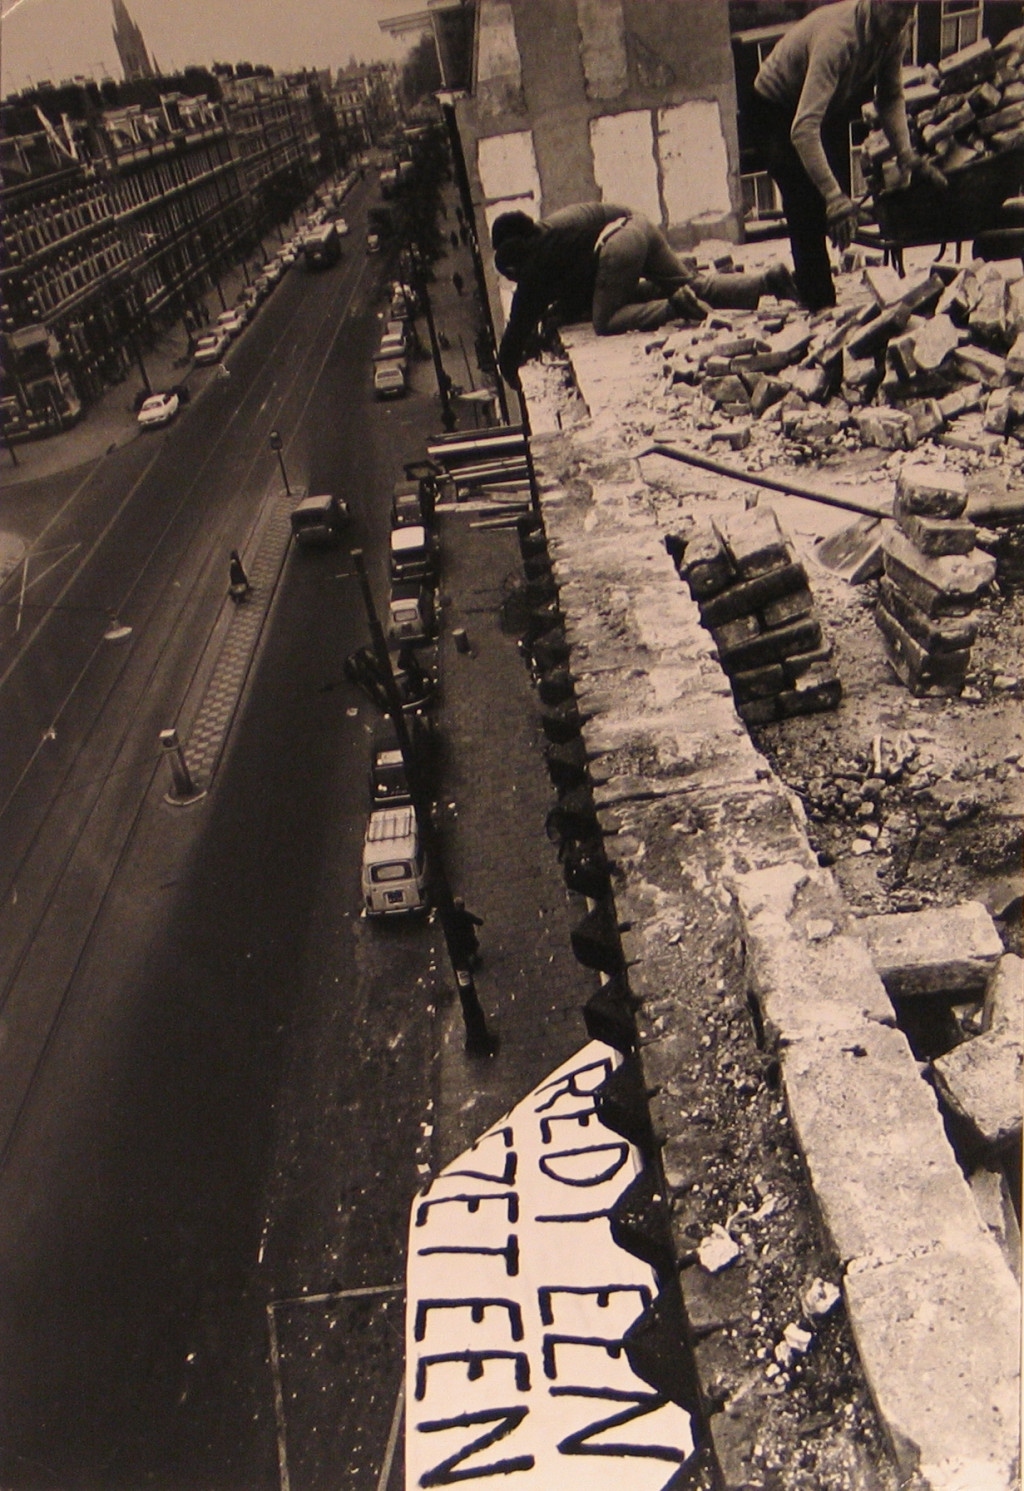 Pieter Boersma, Wijttenbachstraat demolition, October 1969. Collection Stedelijk Museum Amsterdam